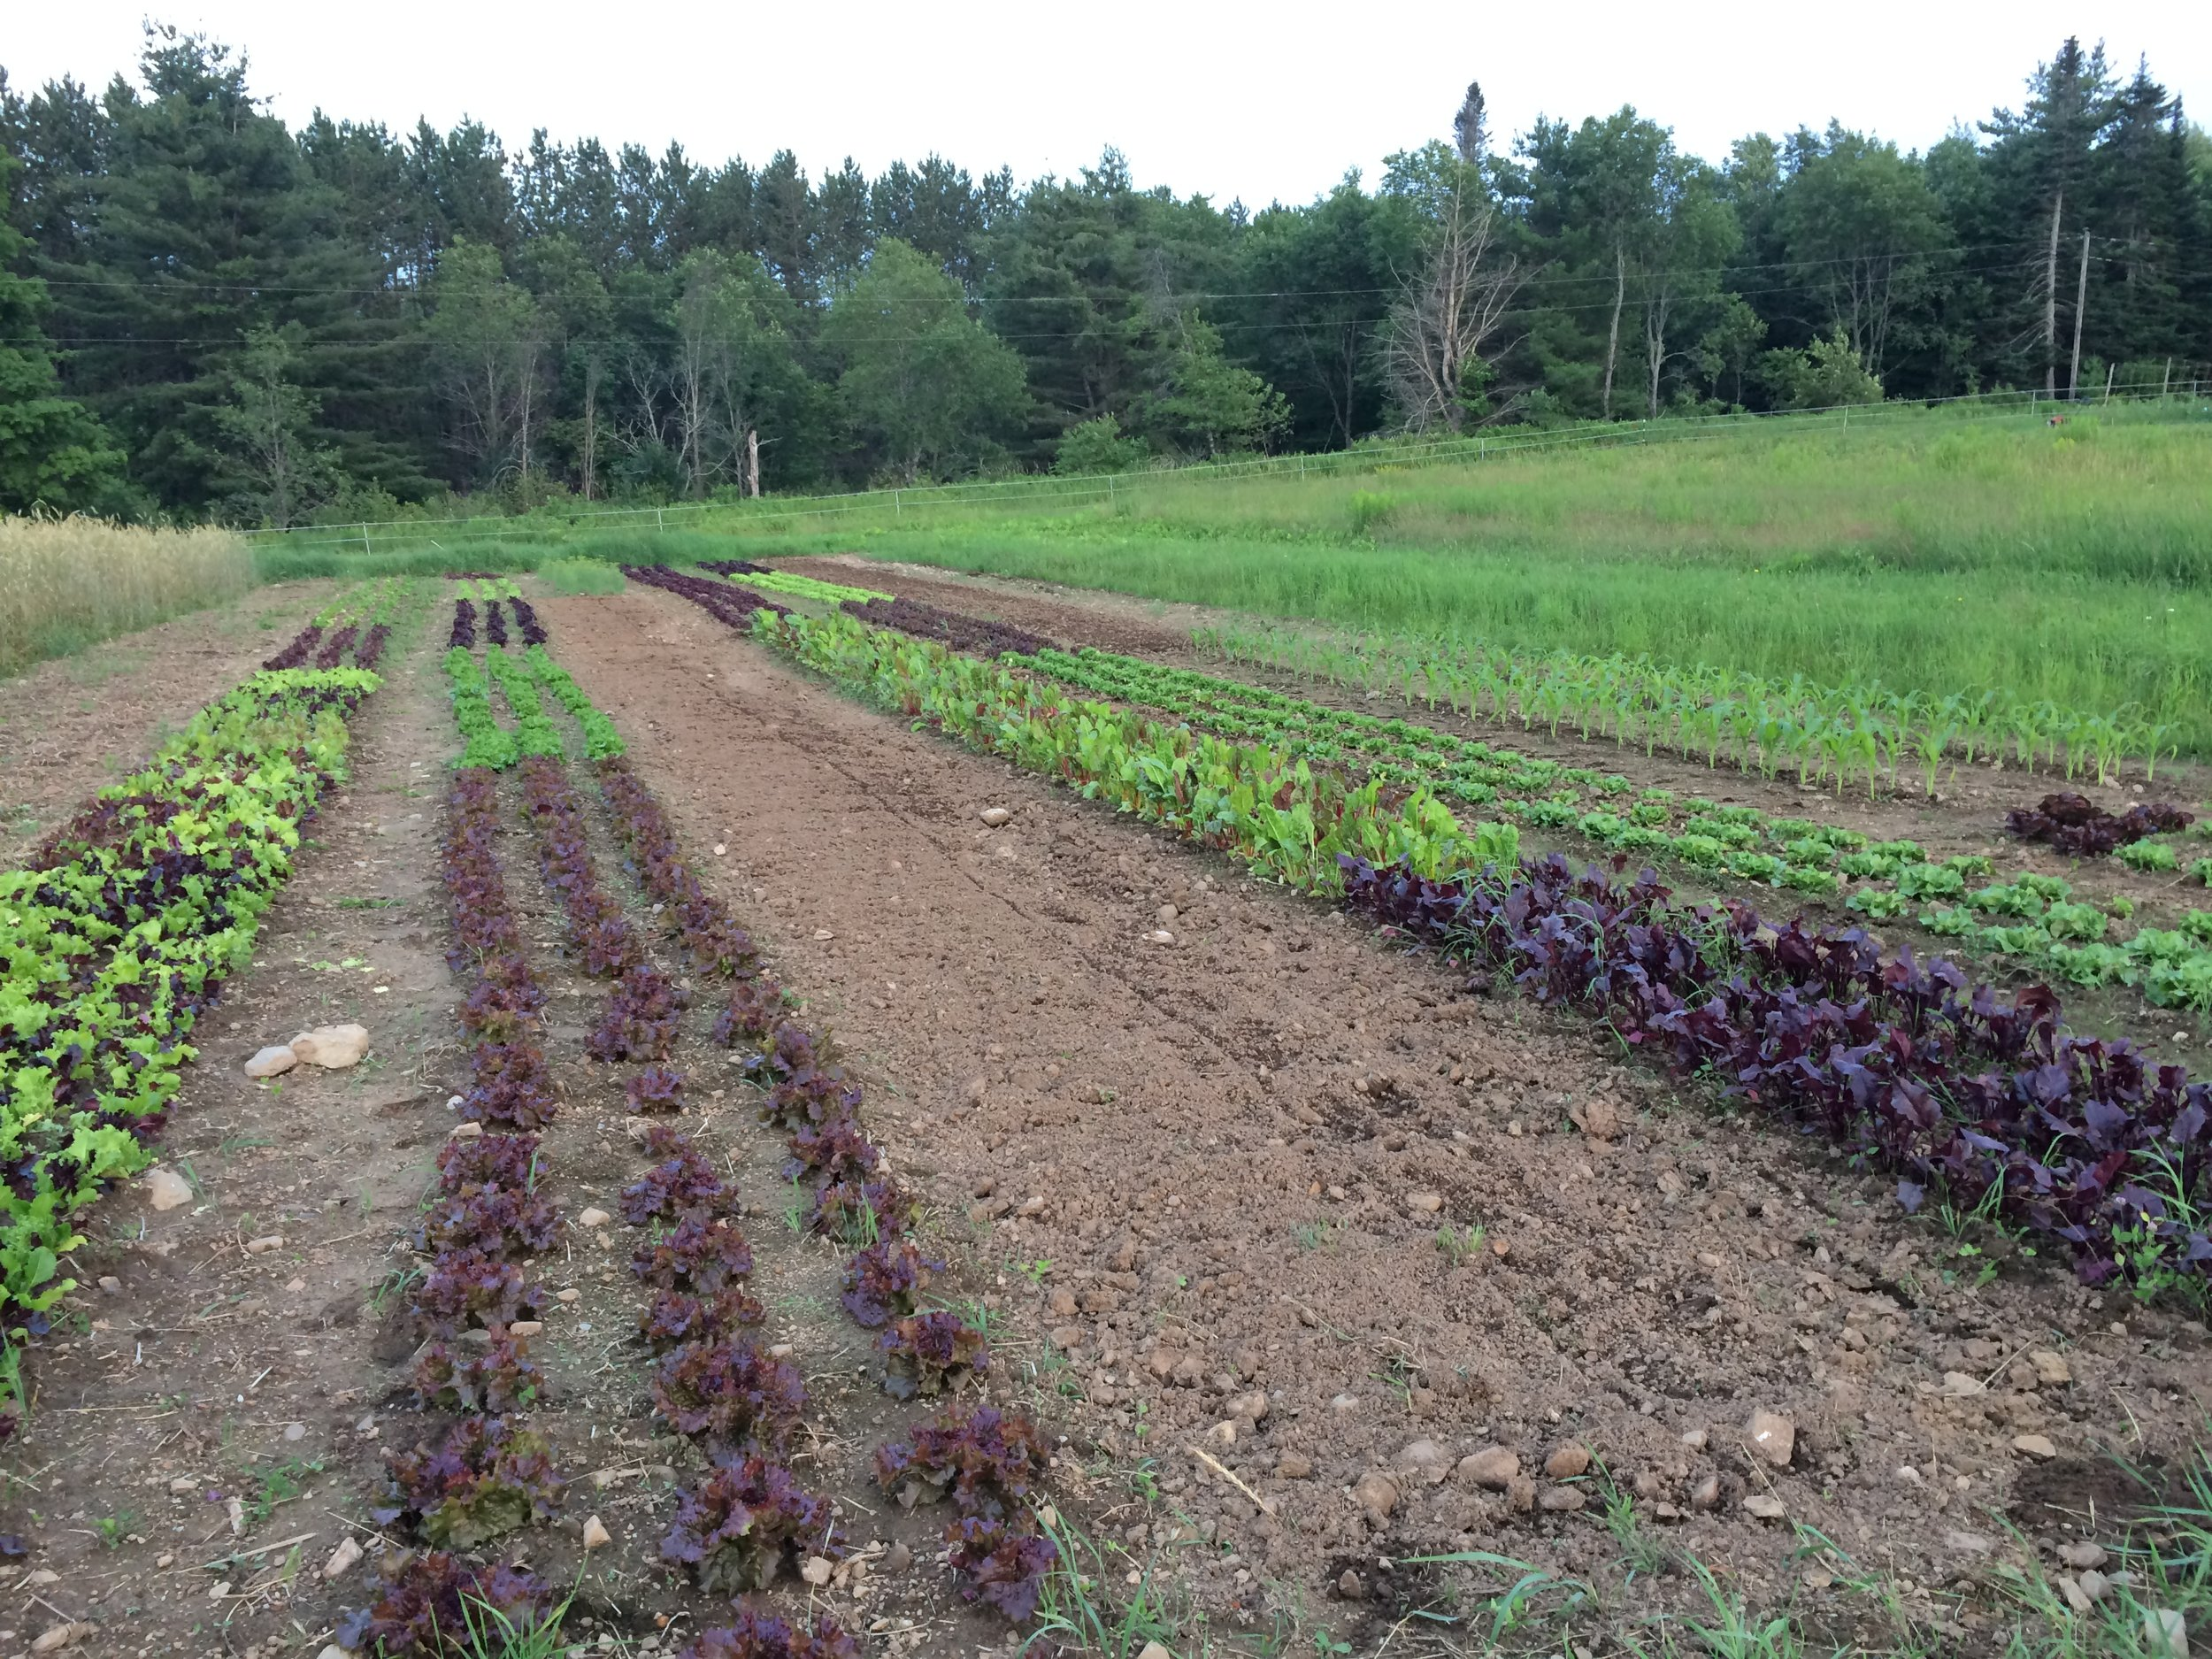 Lettuces, beet & chard greens, and herbs